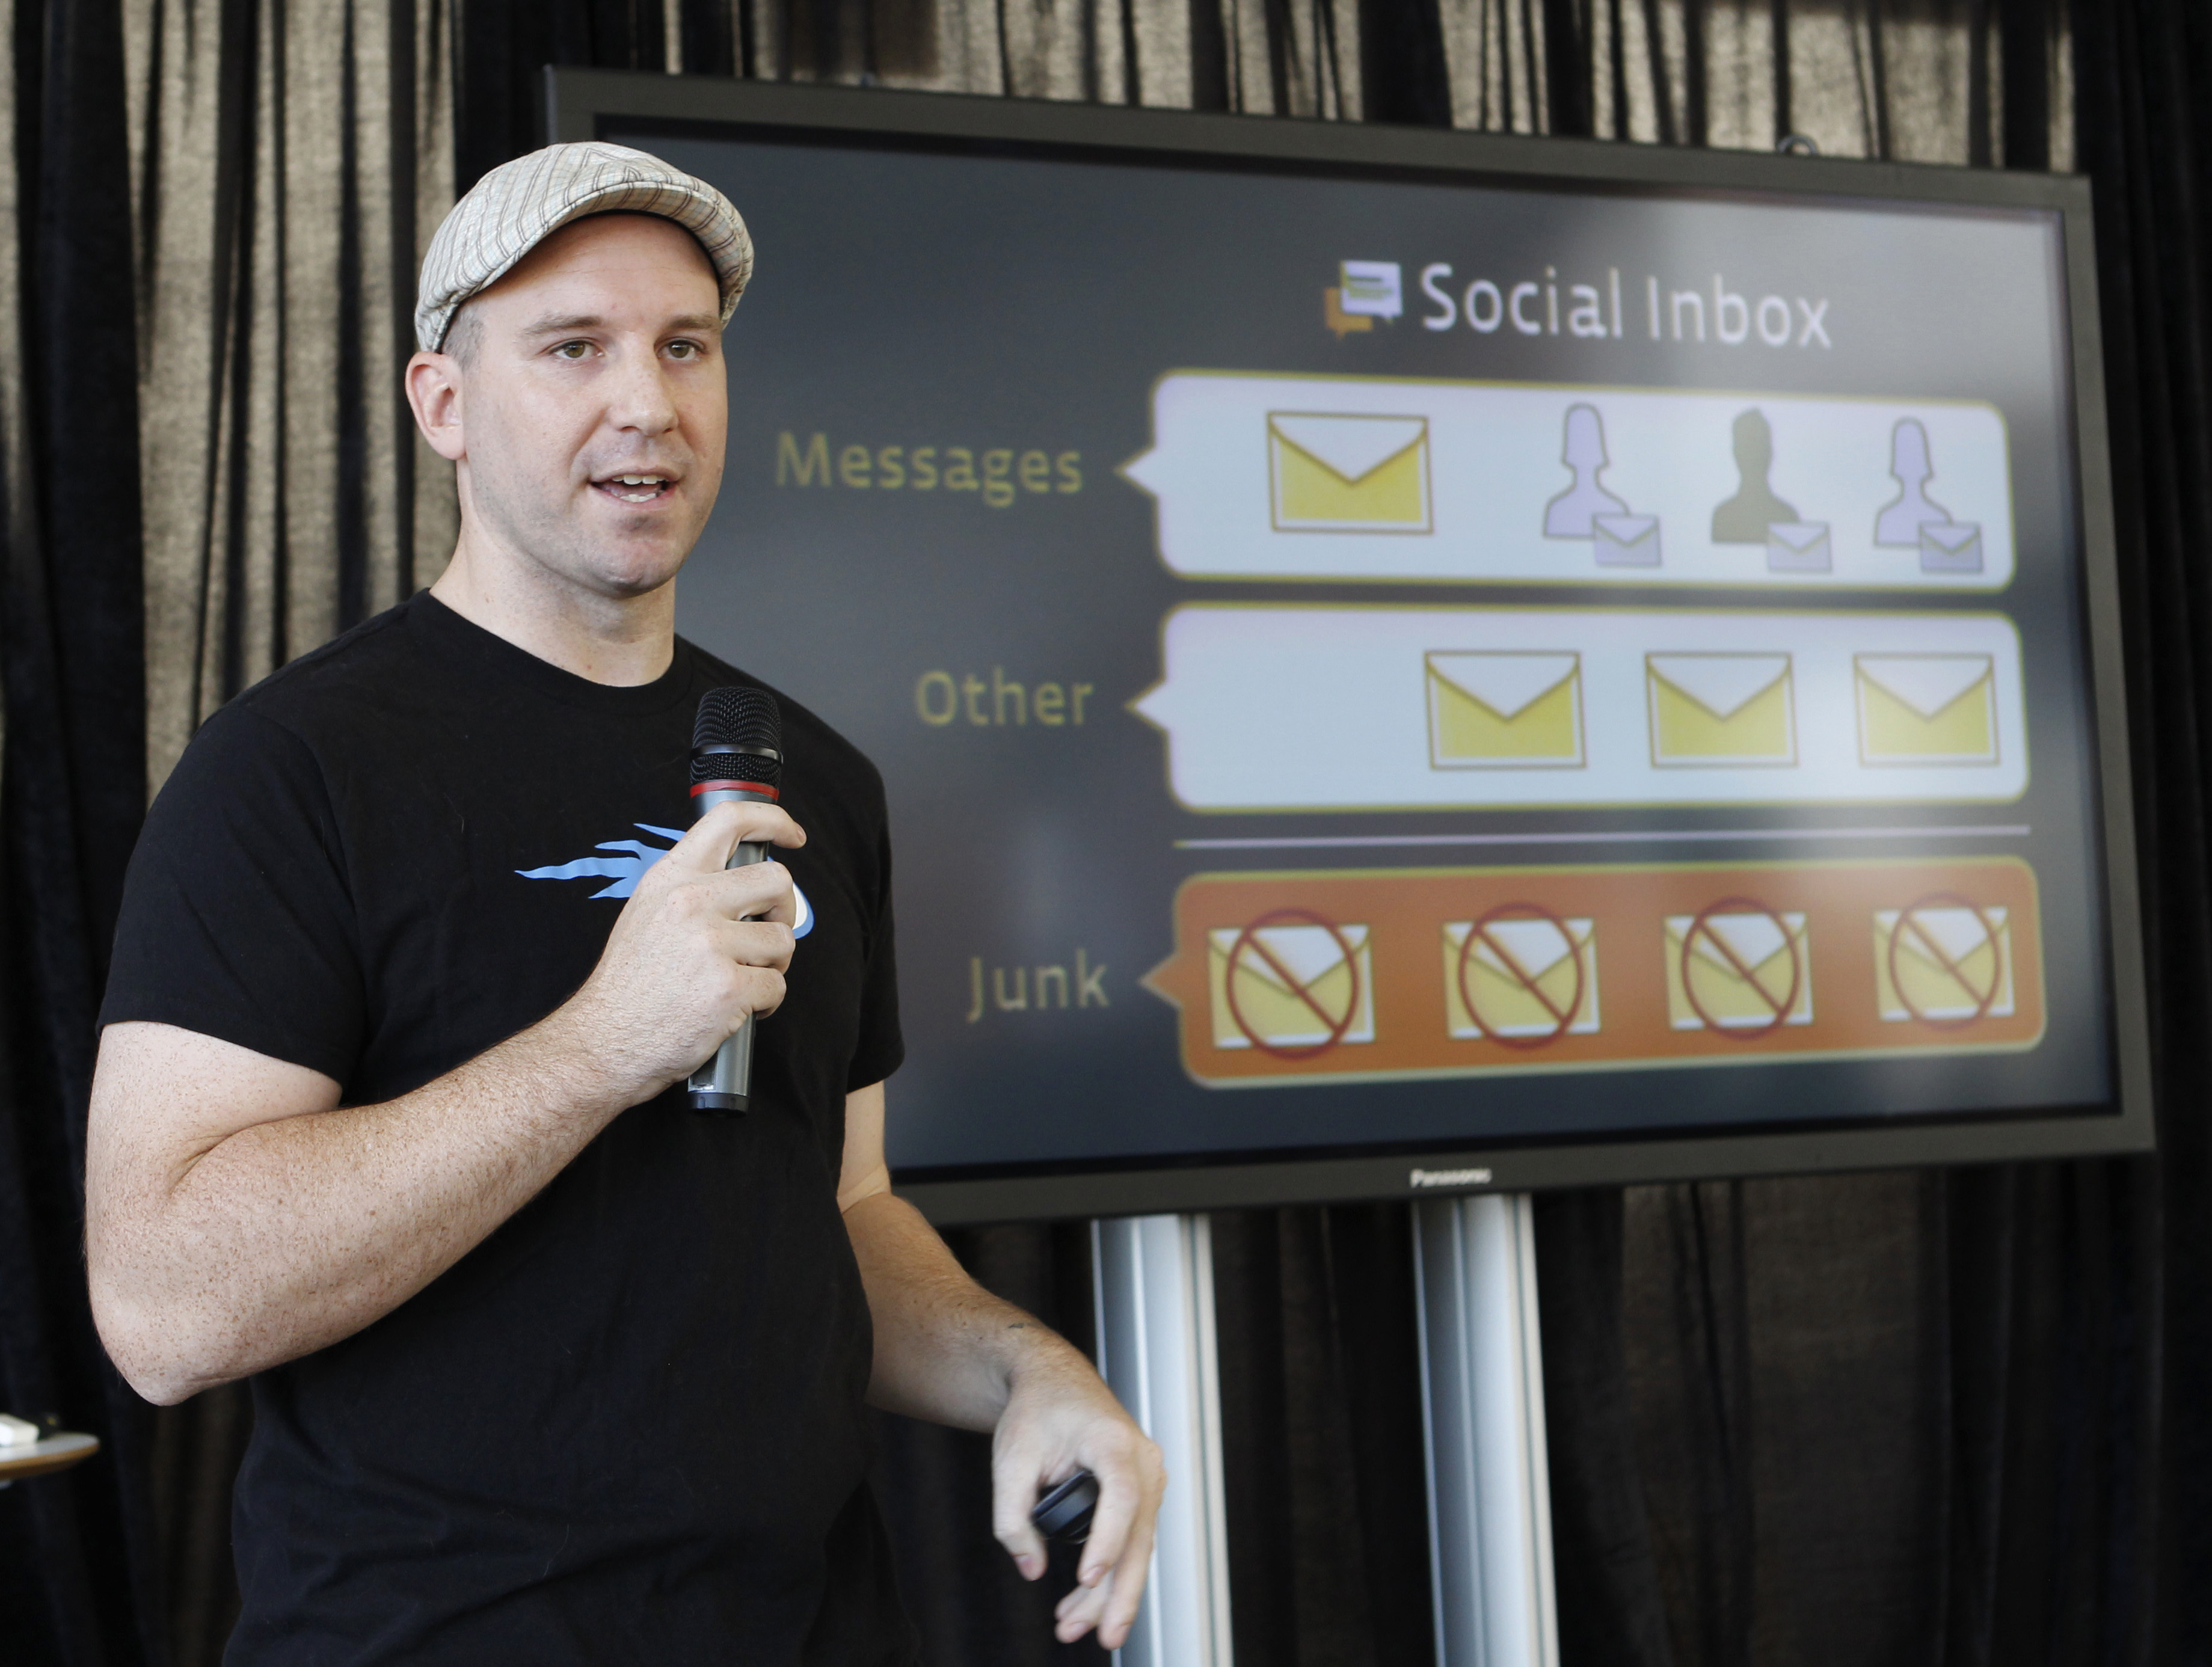 FILE - Andrew Bosworth, then a Facebook engineer, talks about the new Facebook messaging service at an announcement in San Francisco, Nov. 15, 2010. Now a Facebook vice president, he said in an internal memo in 2016 that the social mediacompany nee...